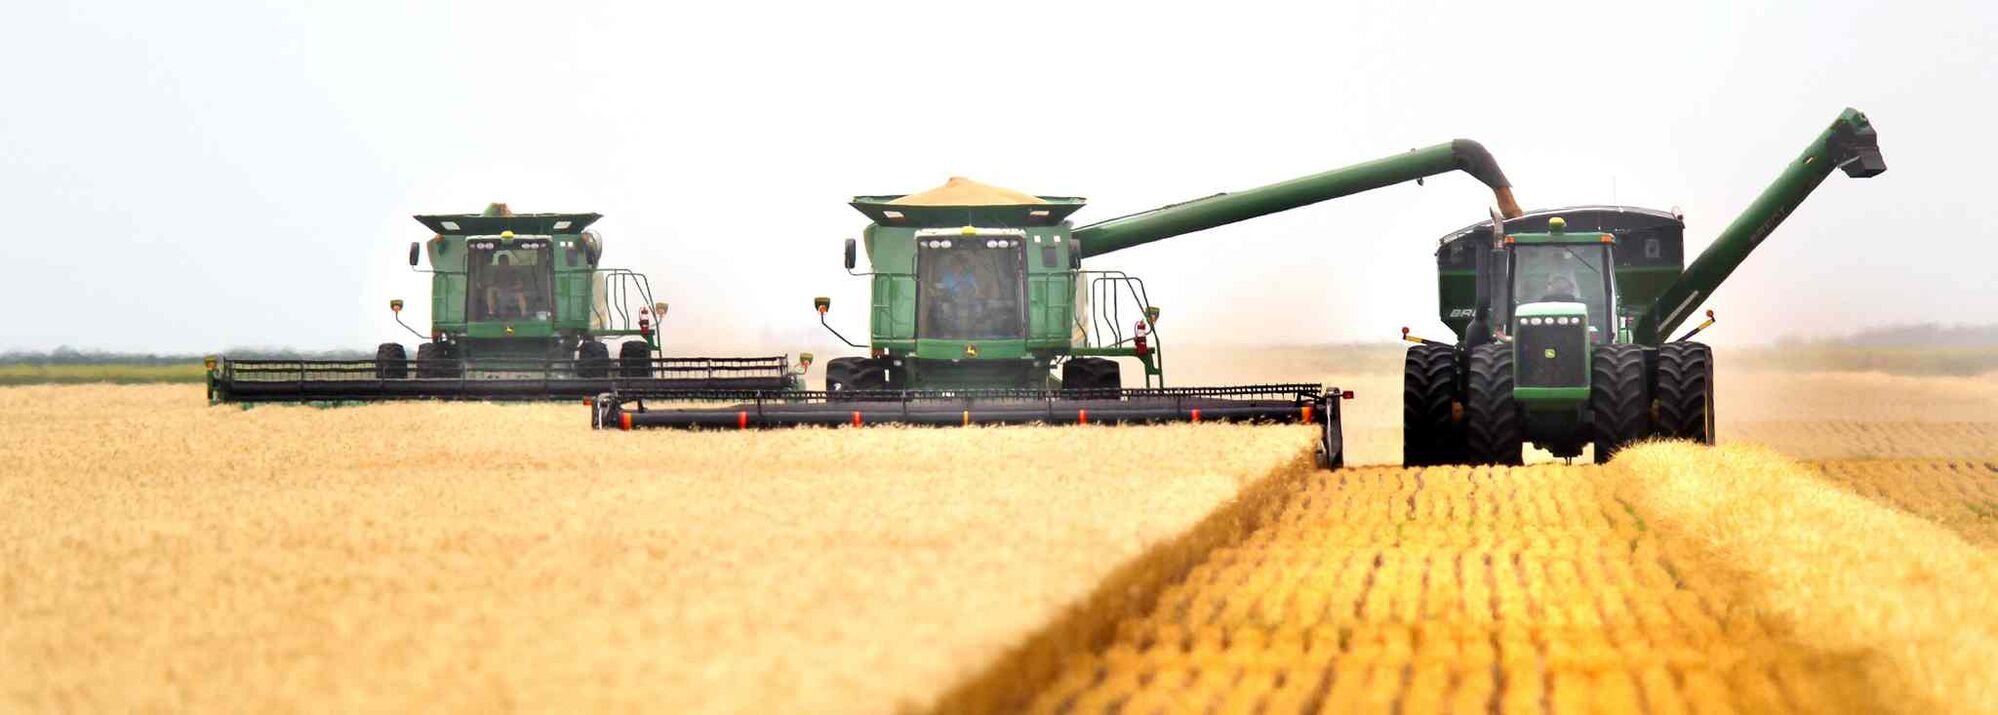 A squad of harvesters reaps early wheat north of Rosenort in mid-July. (Phil Hossack / Winnipeg Free Press)